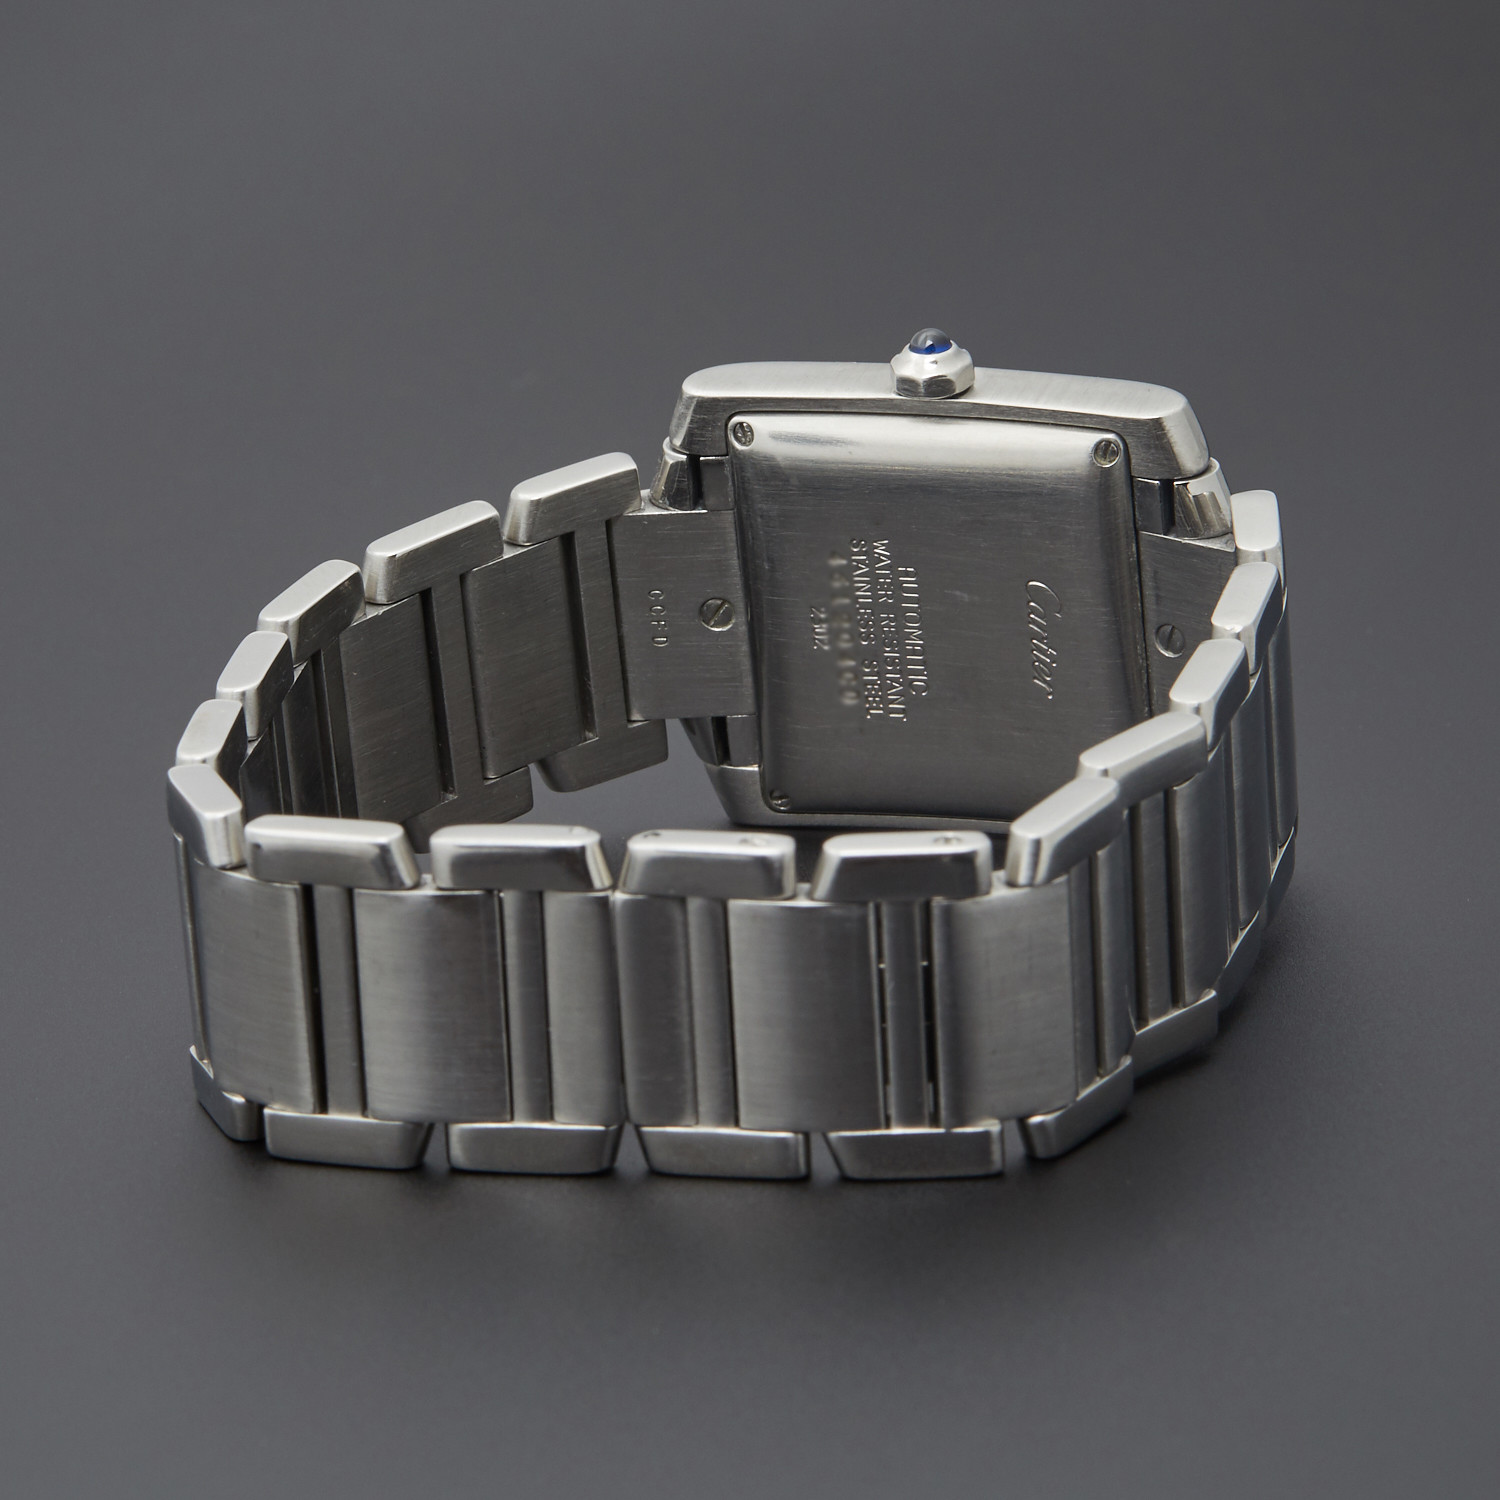 db262868720 Cartier Tank Francaise Large Automatic    2302    Pre-Owned ...